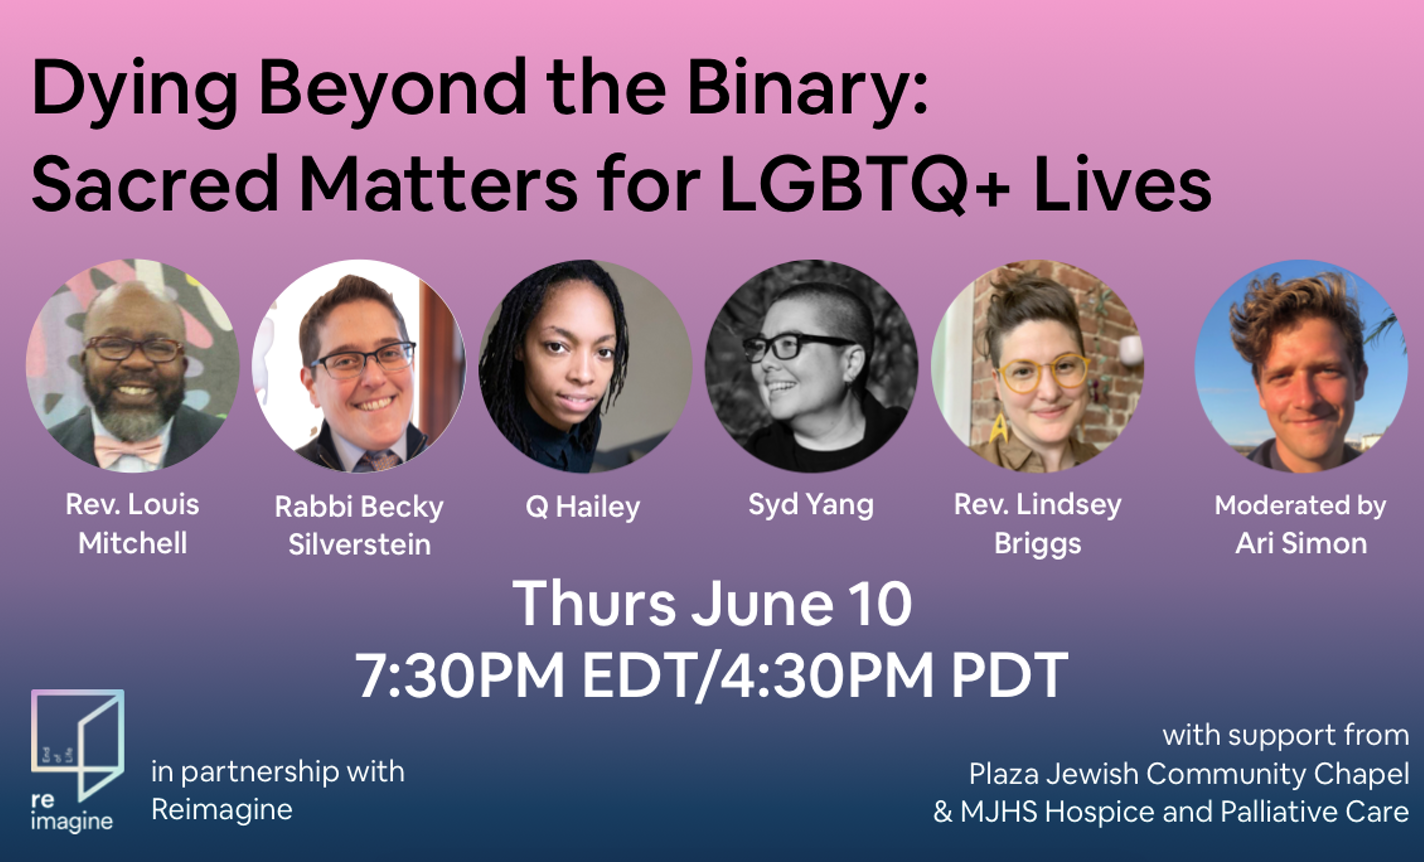 Dying Beyond the Binary: Sacred Matters for LGBTQ+ Lives